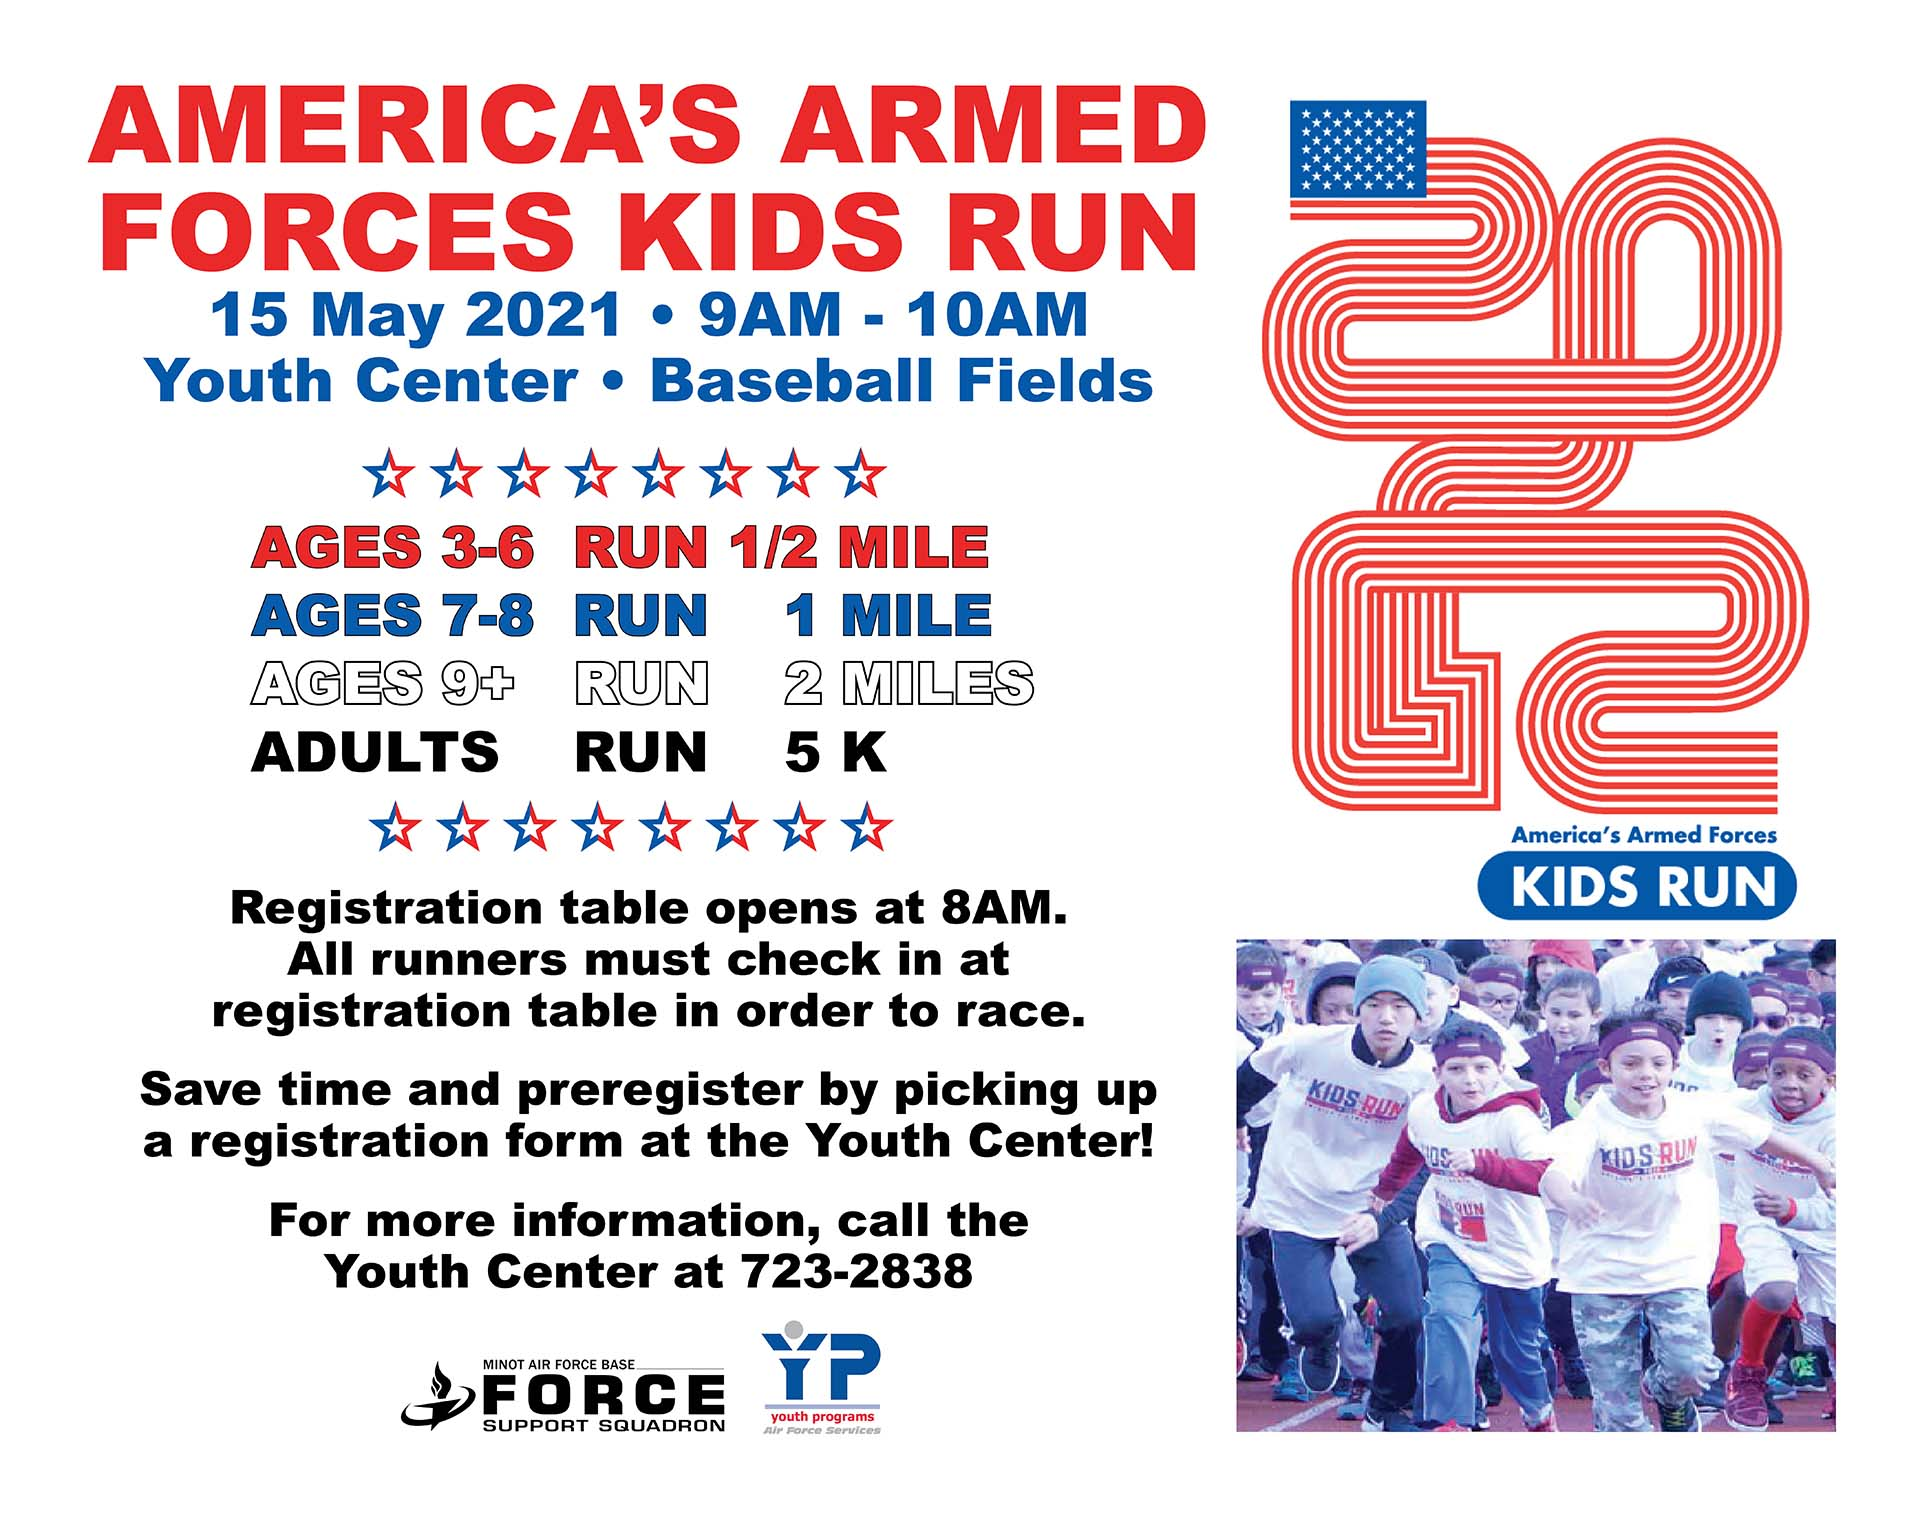 America's Armed Forces Kids Run